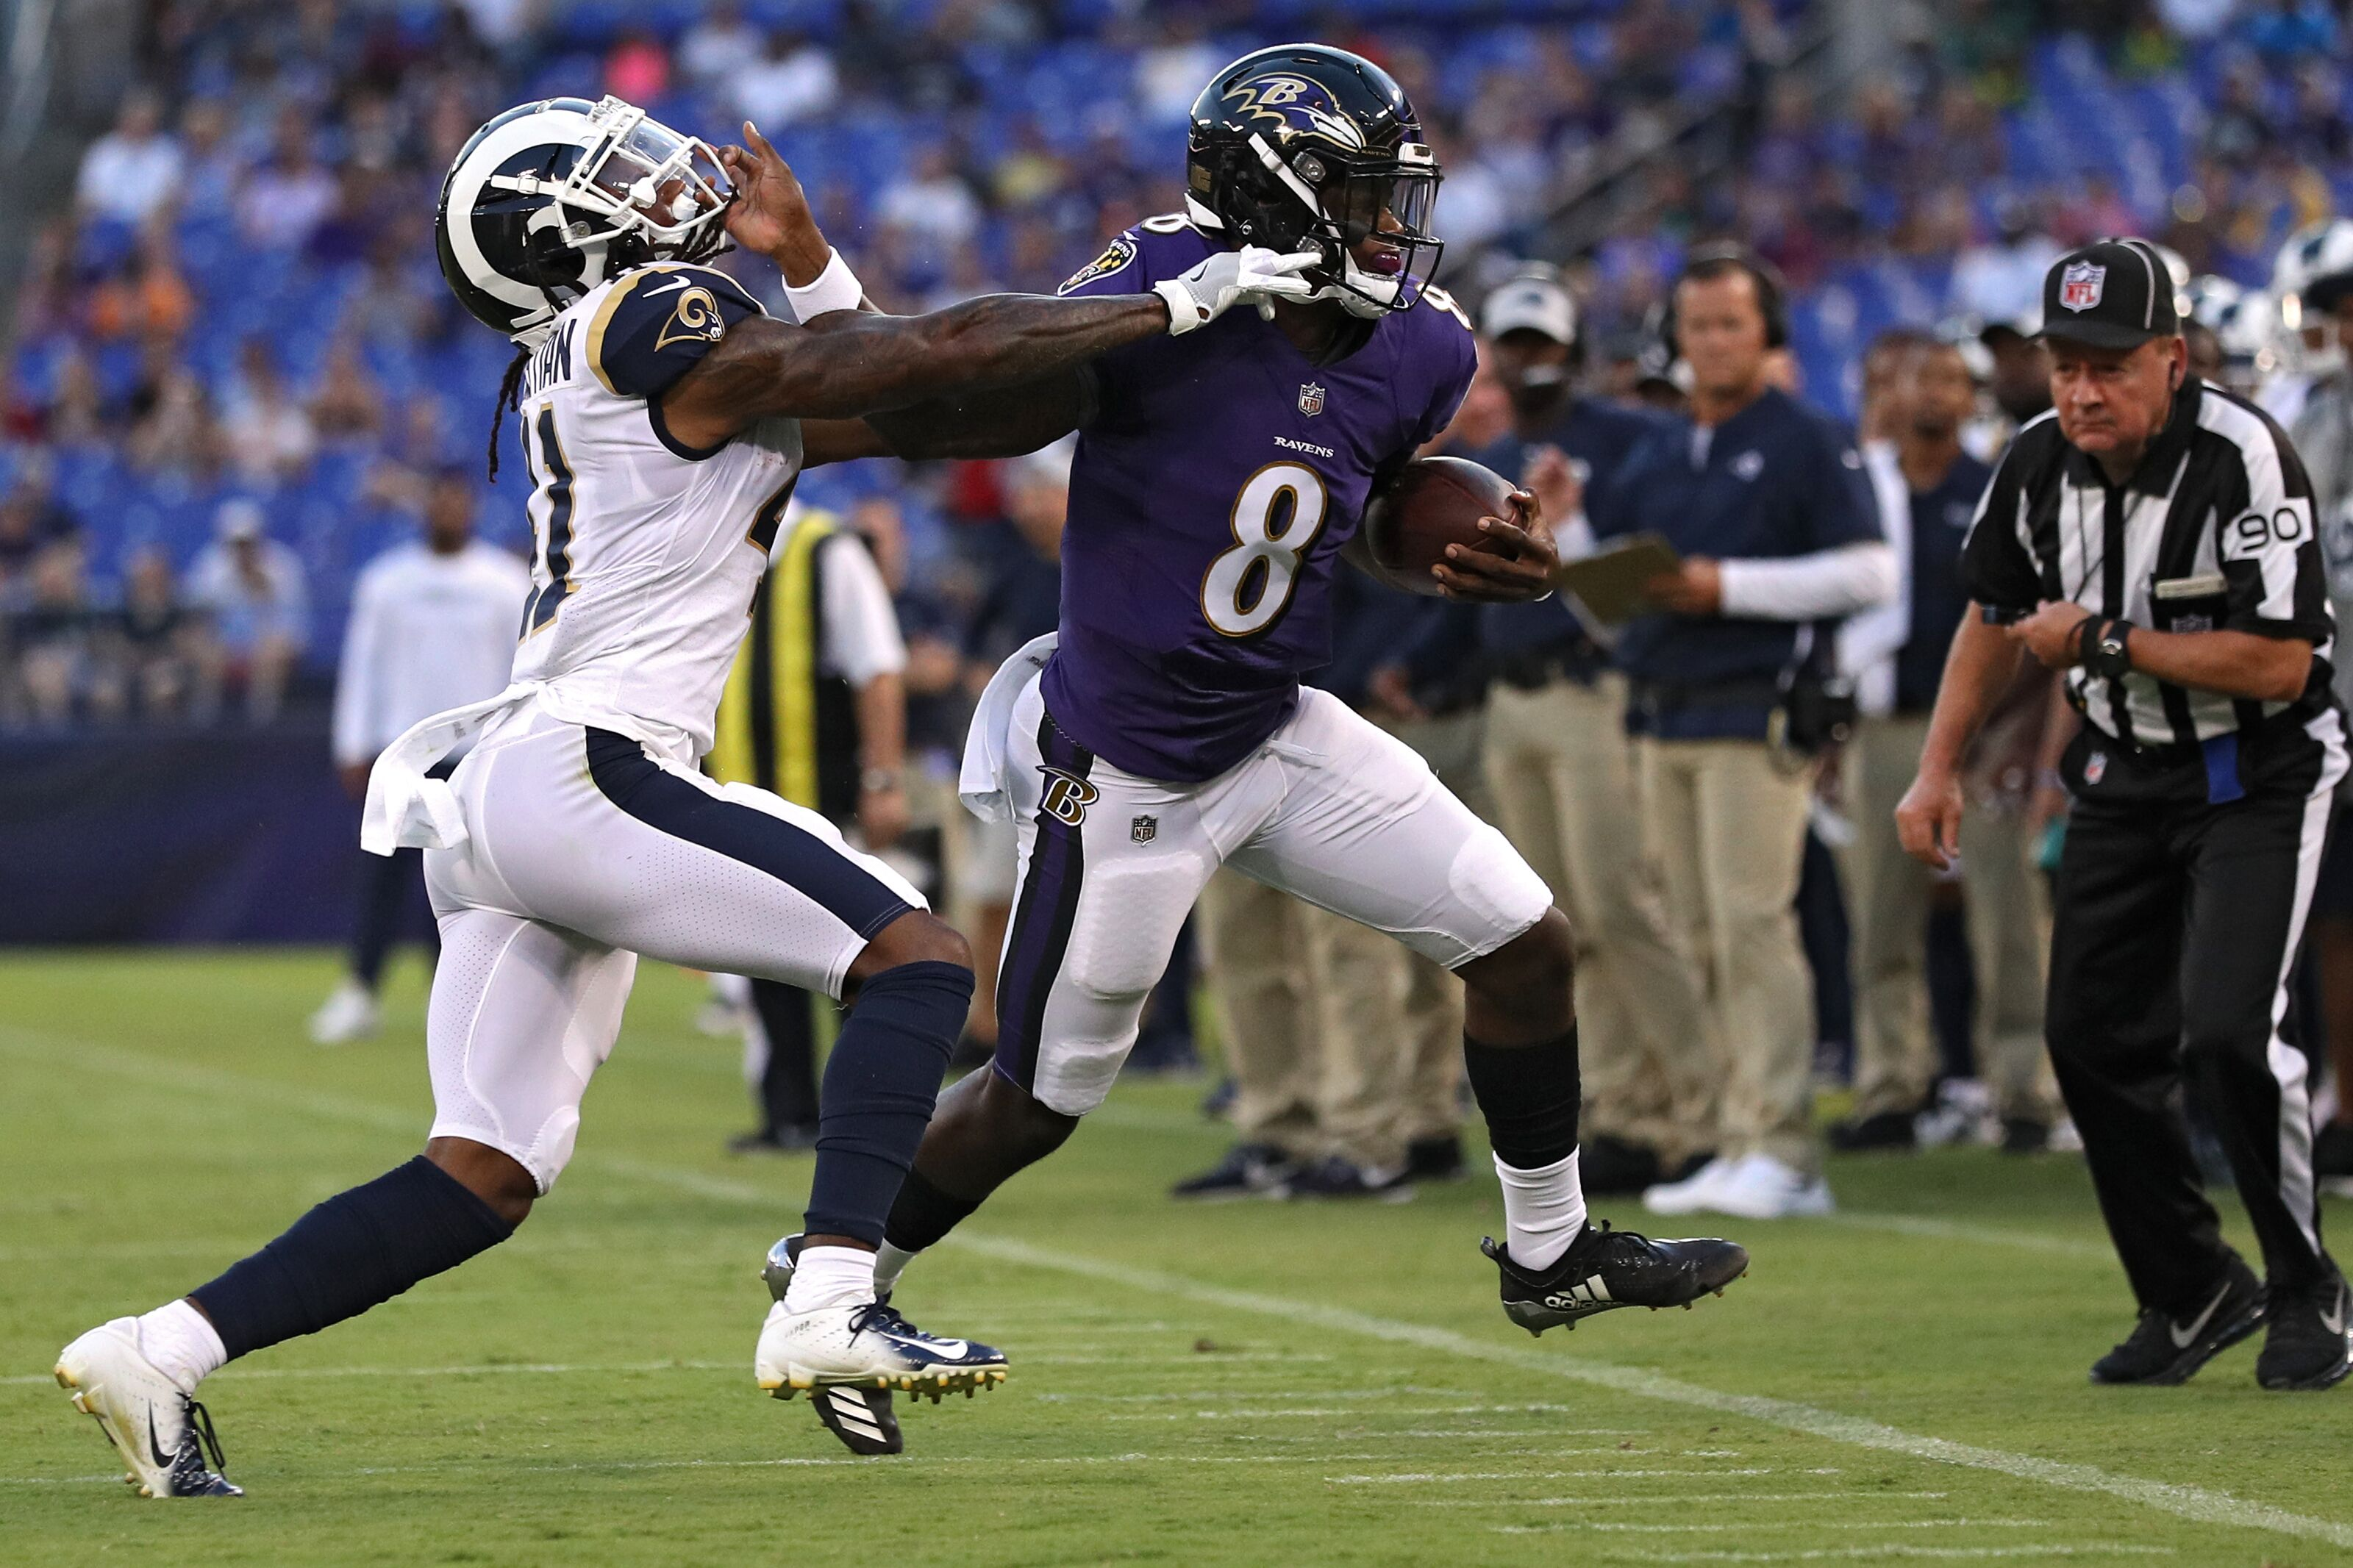 f10cde25 Baltimore Ravens destroy Rams: 6 players whose stock is up - Page 3